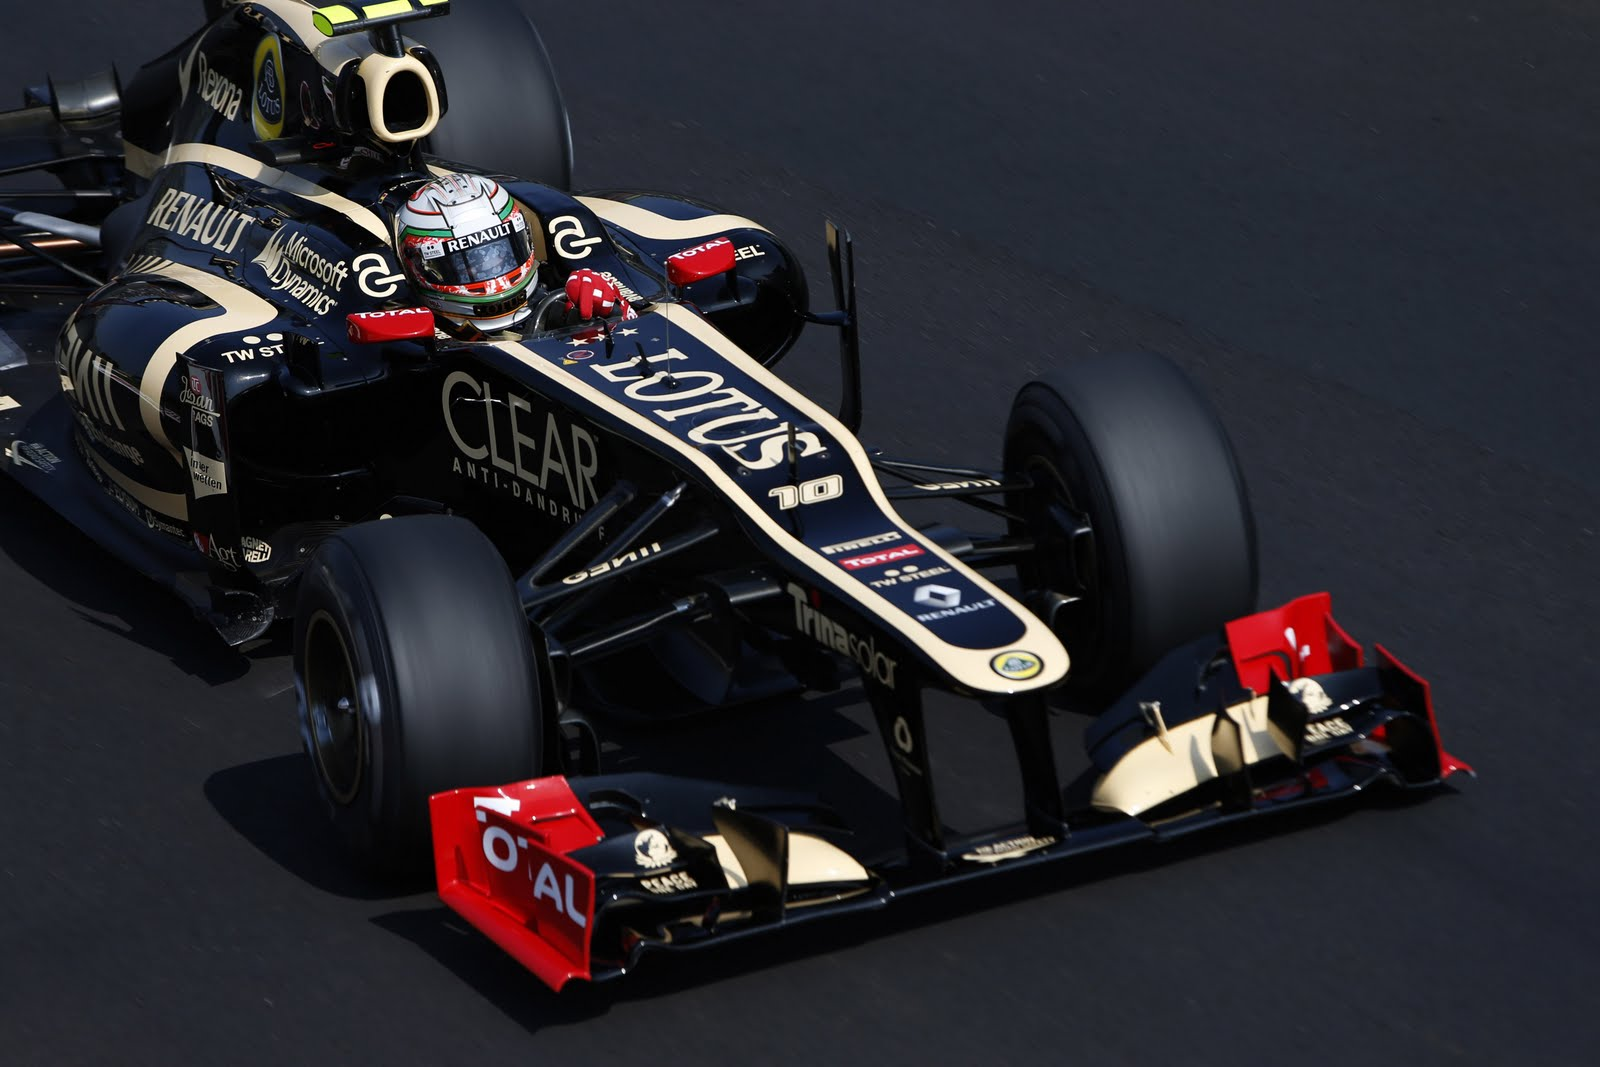 Expectations met for Lotus